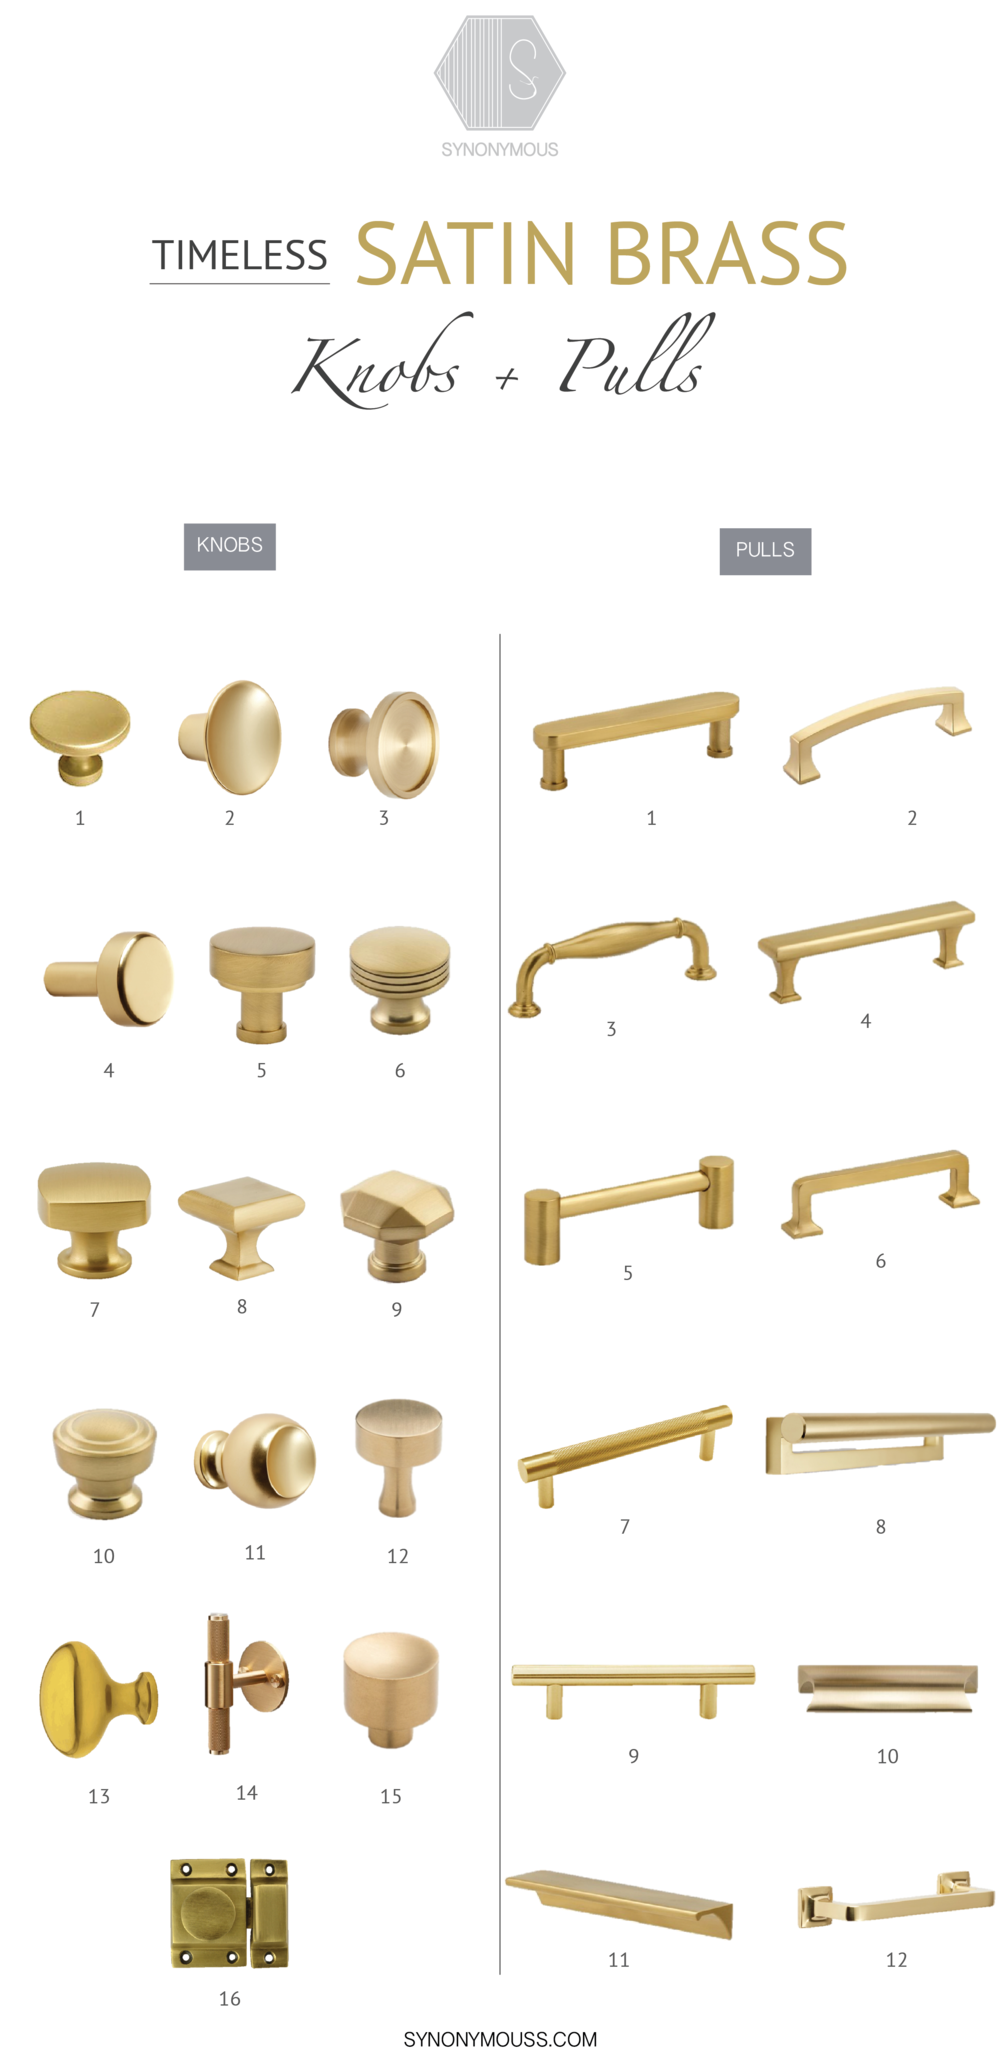 Timeless Satin Brass Knobs and Pulls - Roundup - Synonymouss.com - Synonymous